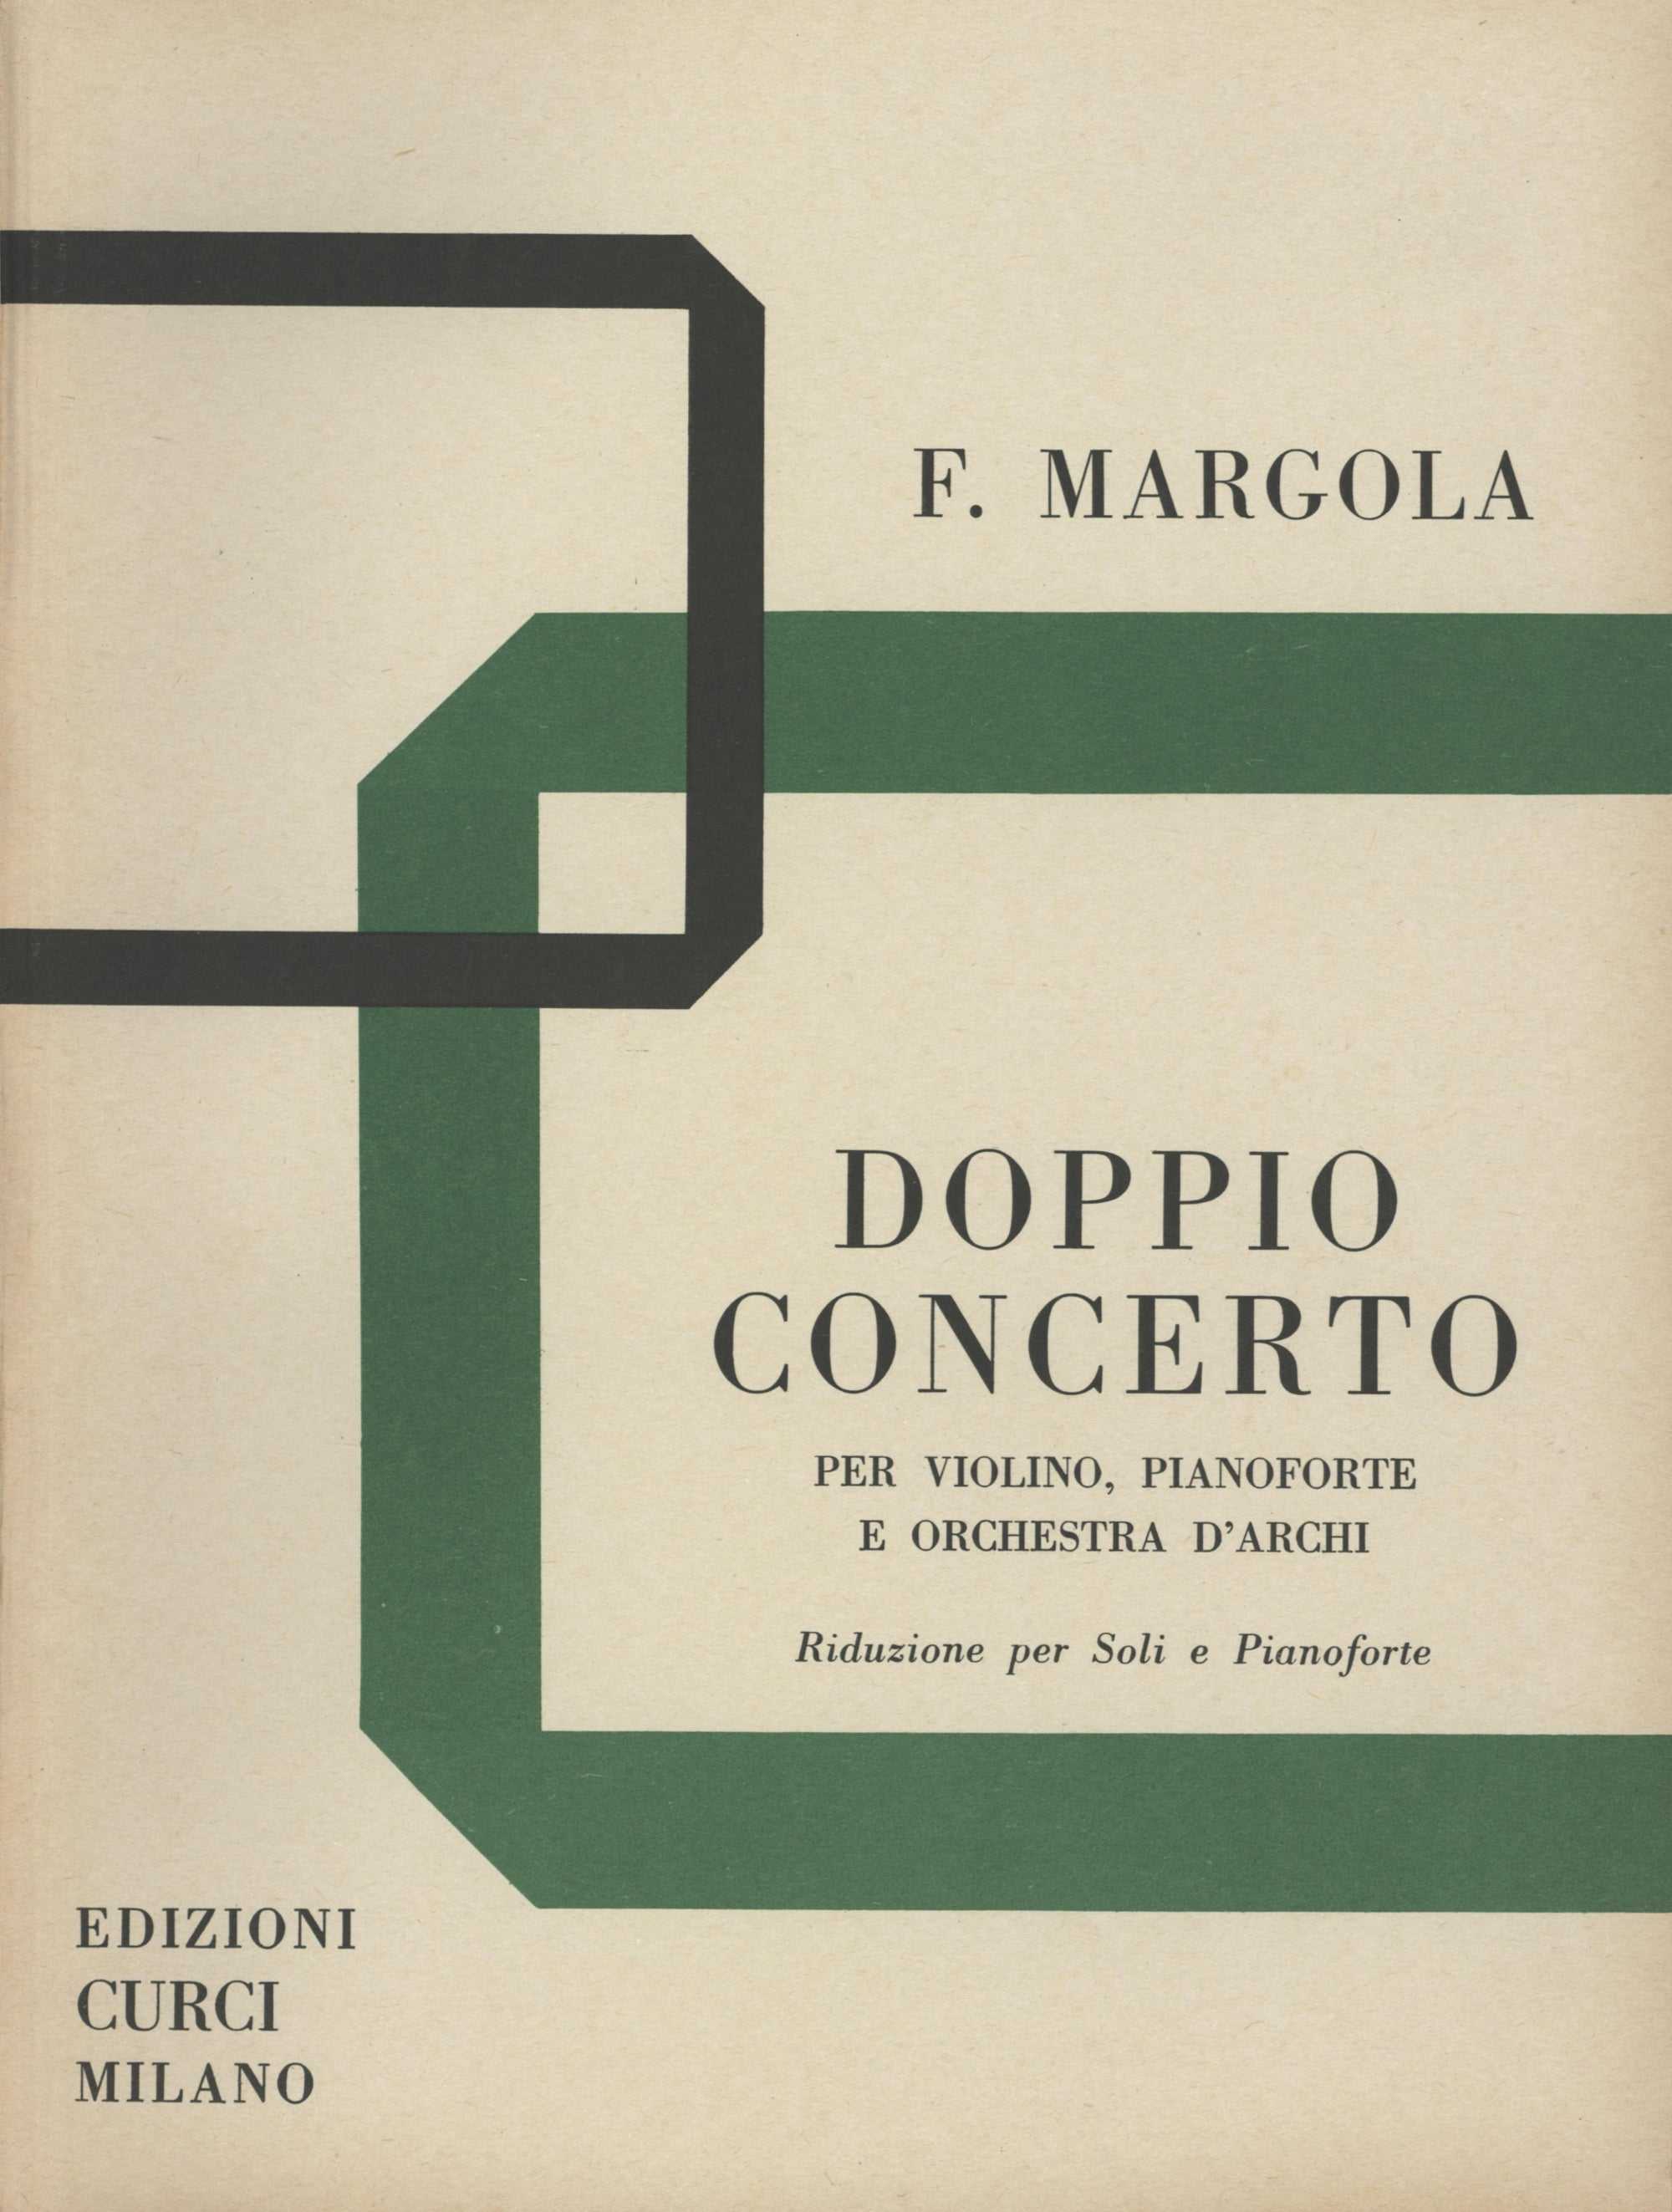 Margola: Double Concerto for Violin, Piano, and String Orchestra